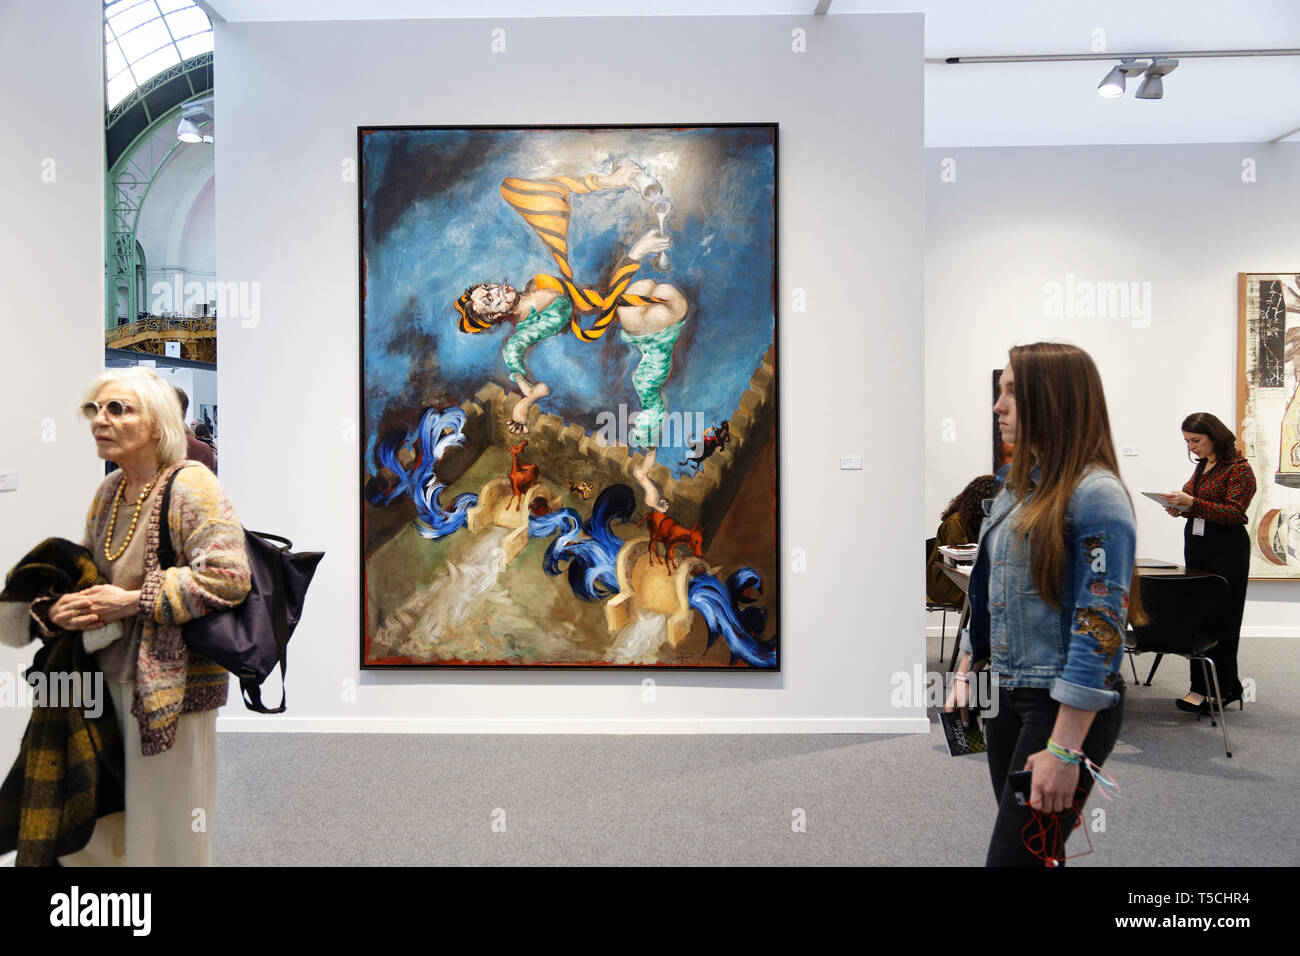 Paris, France. 3th April, 2019. Gerard Garouste exibited at Paris Art Fair, Paris, 2019, France. Credit: Veronique Phitoussi/Alamy Stock Photo Stock Photo